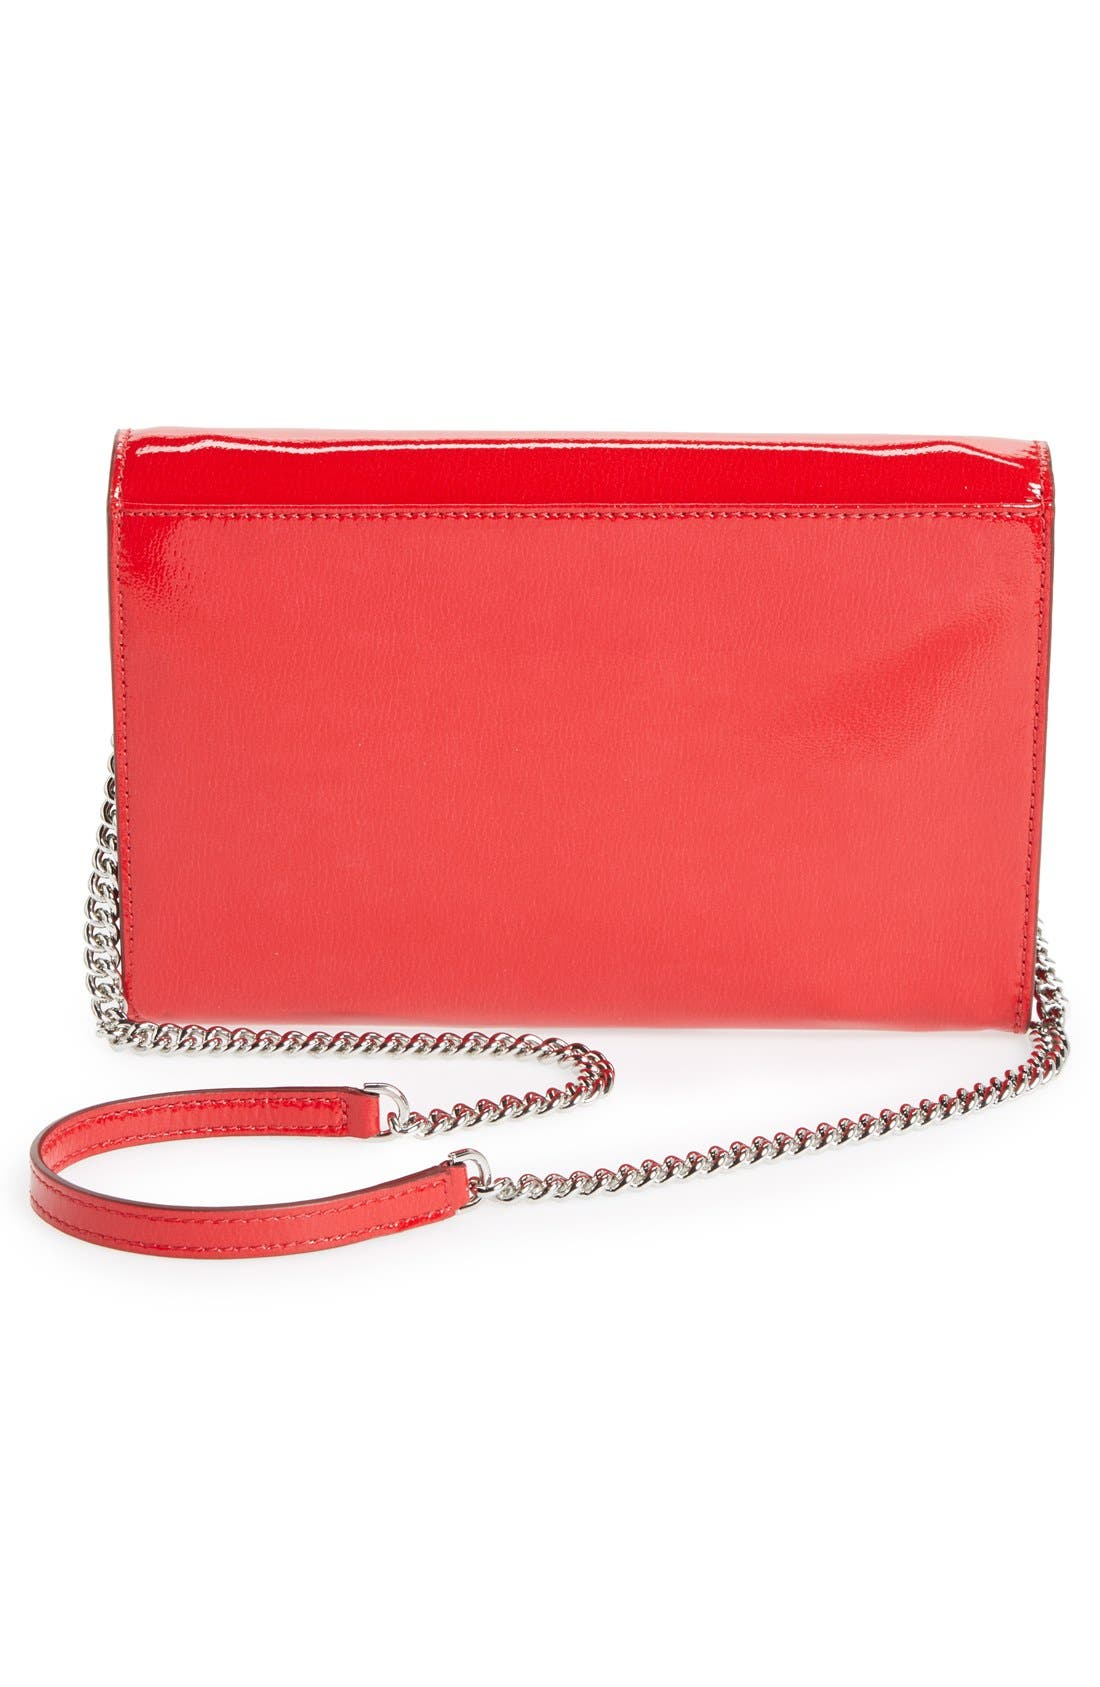 MARC BY MARC JACOBS 'Pegg' Patent Leather Clutch,                             Alternate thumbnail 3, color,                             600